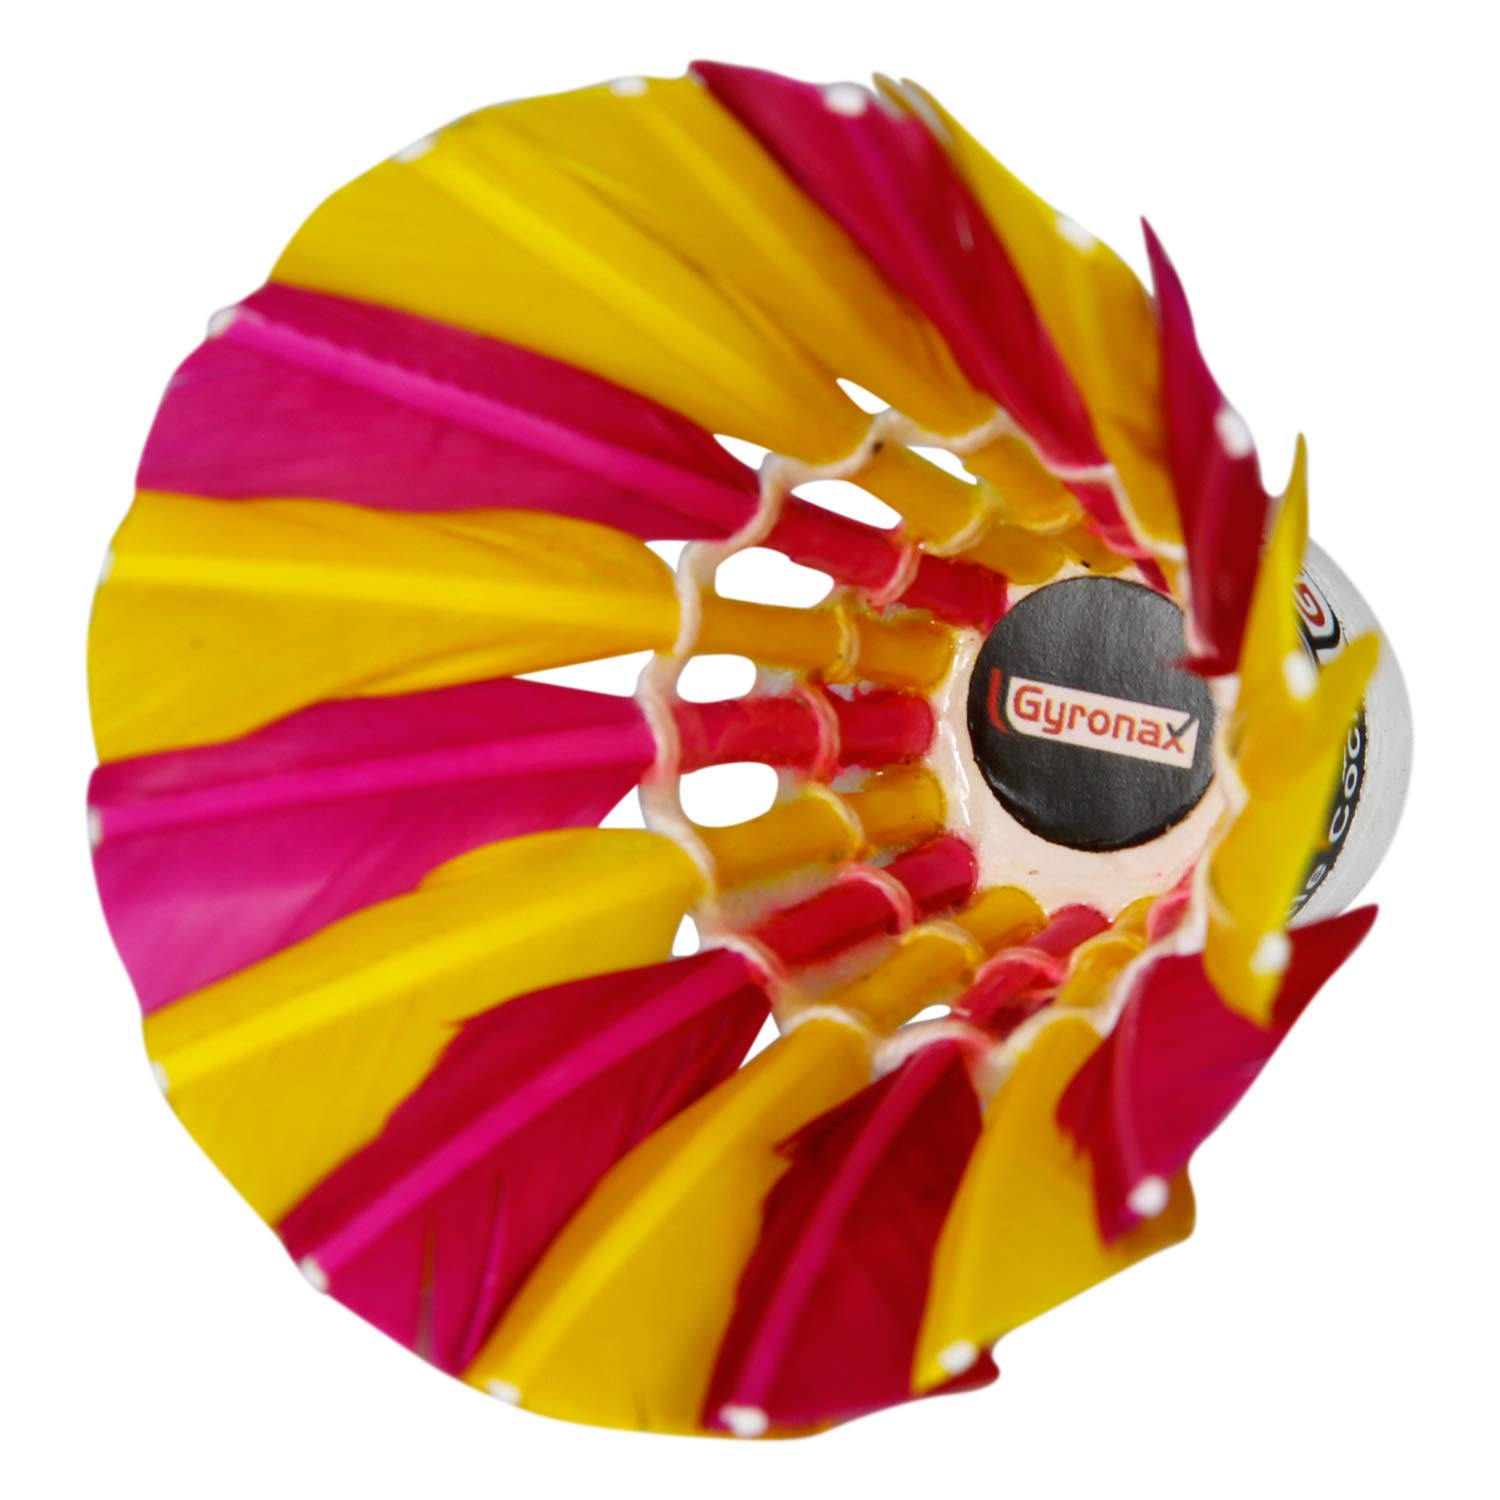 Gyronax multiclr A3 Premium Feather Badminton Shuttlecock (Pack of 10) product image